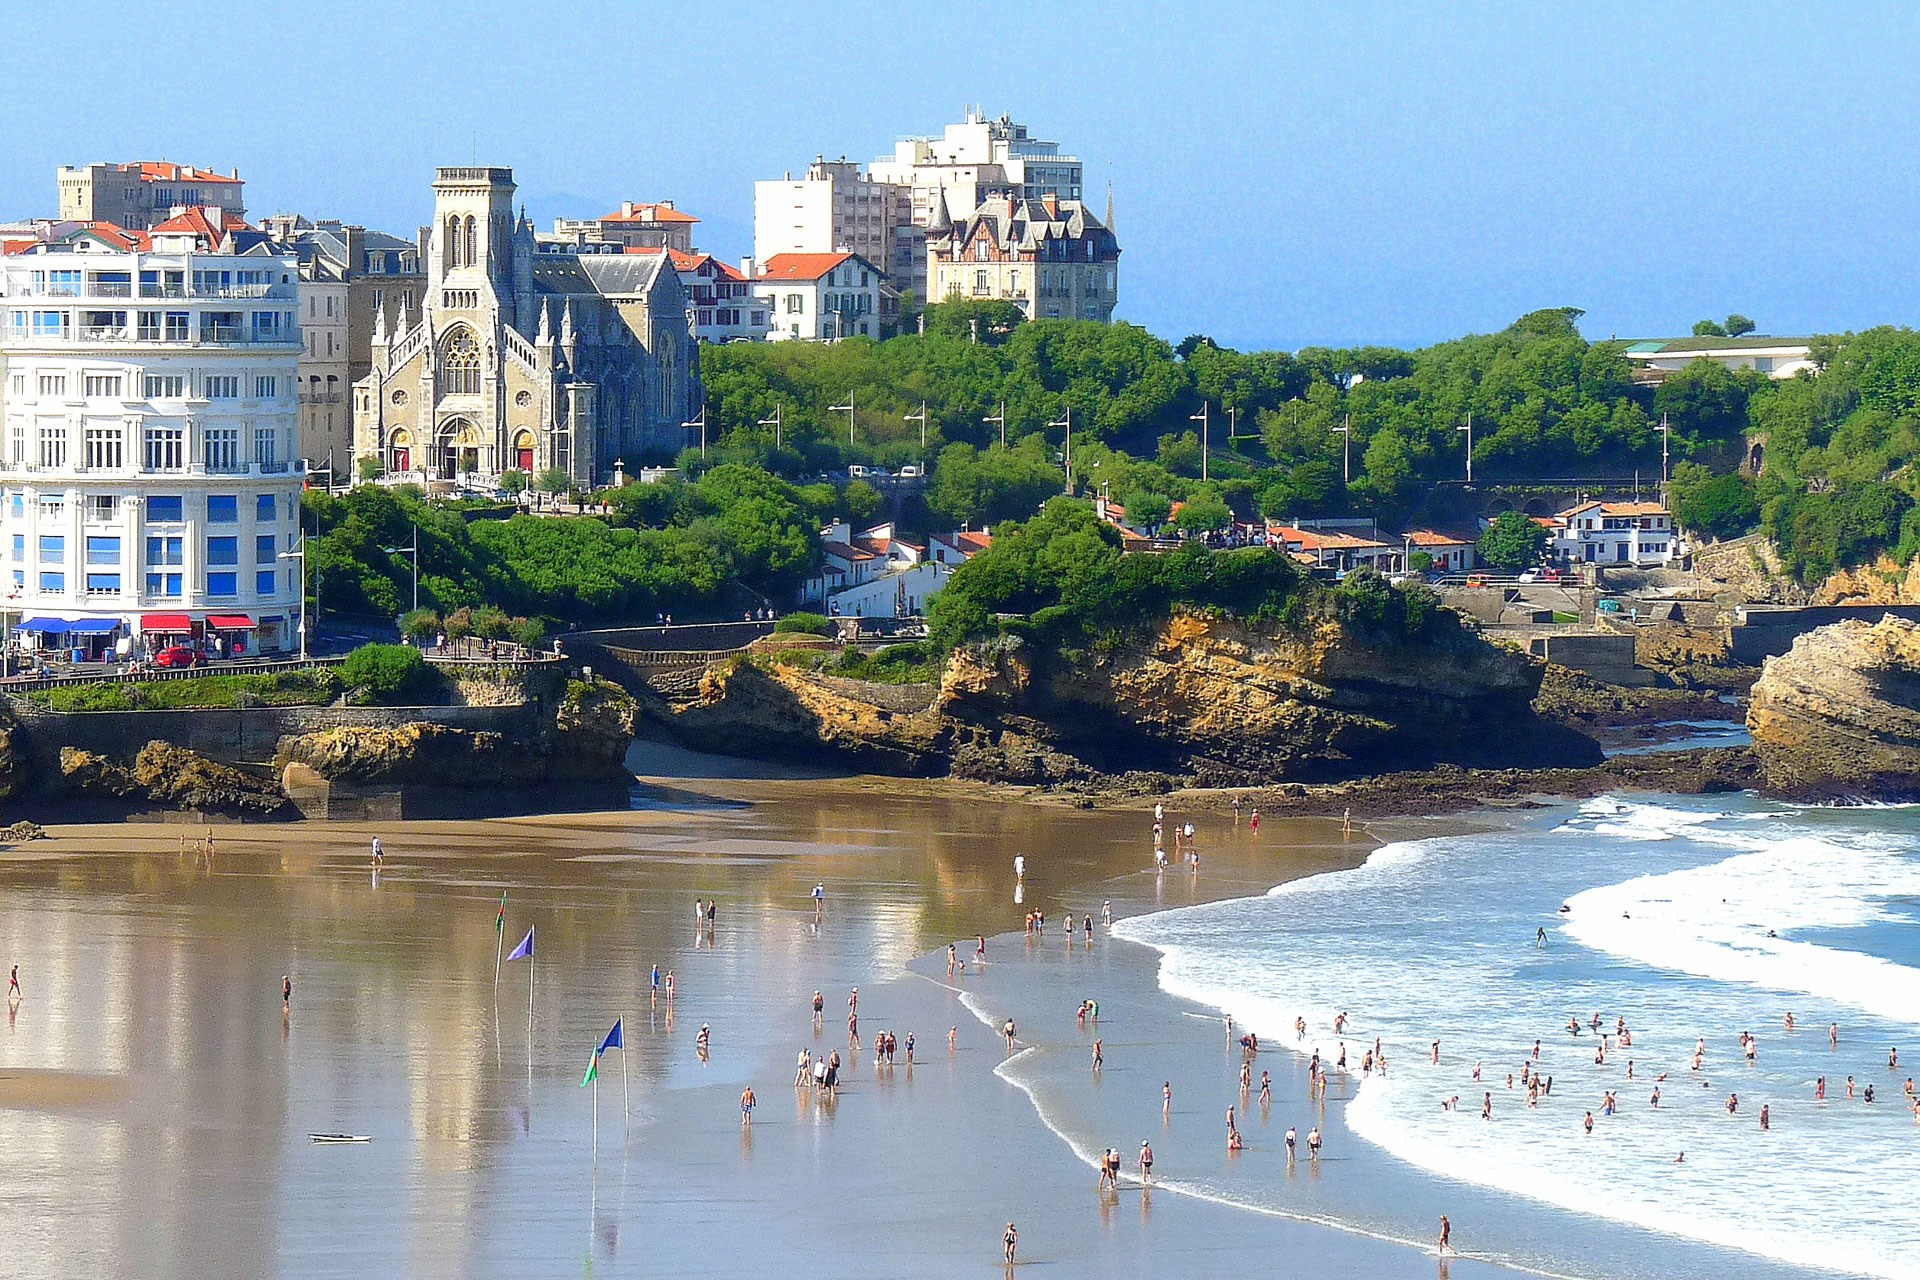 źródło: http://www.cntraveller.com/recommended/coast-countryside/biarritz-france-weekend